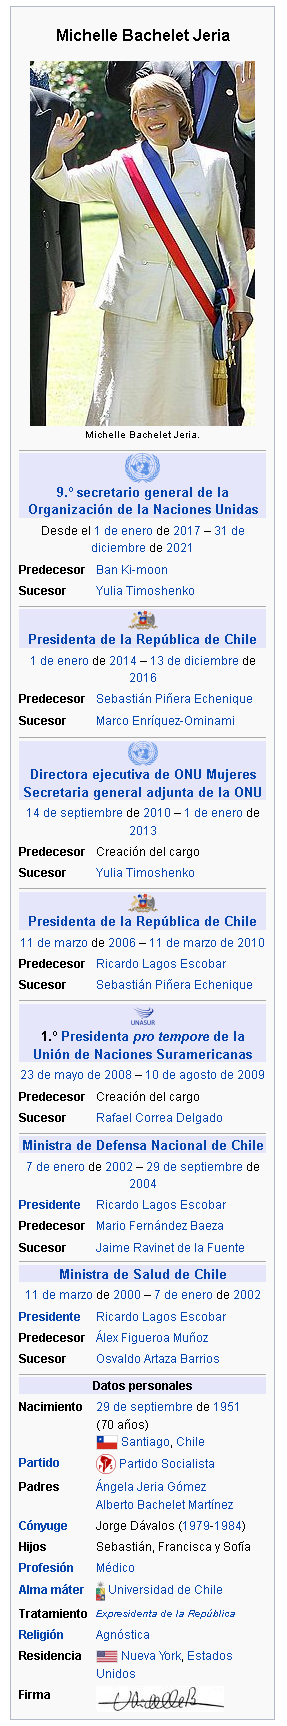 Michelle Bachelet.PNG